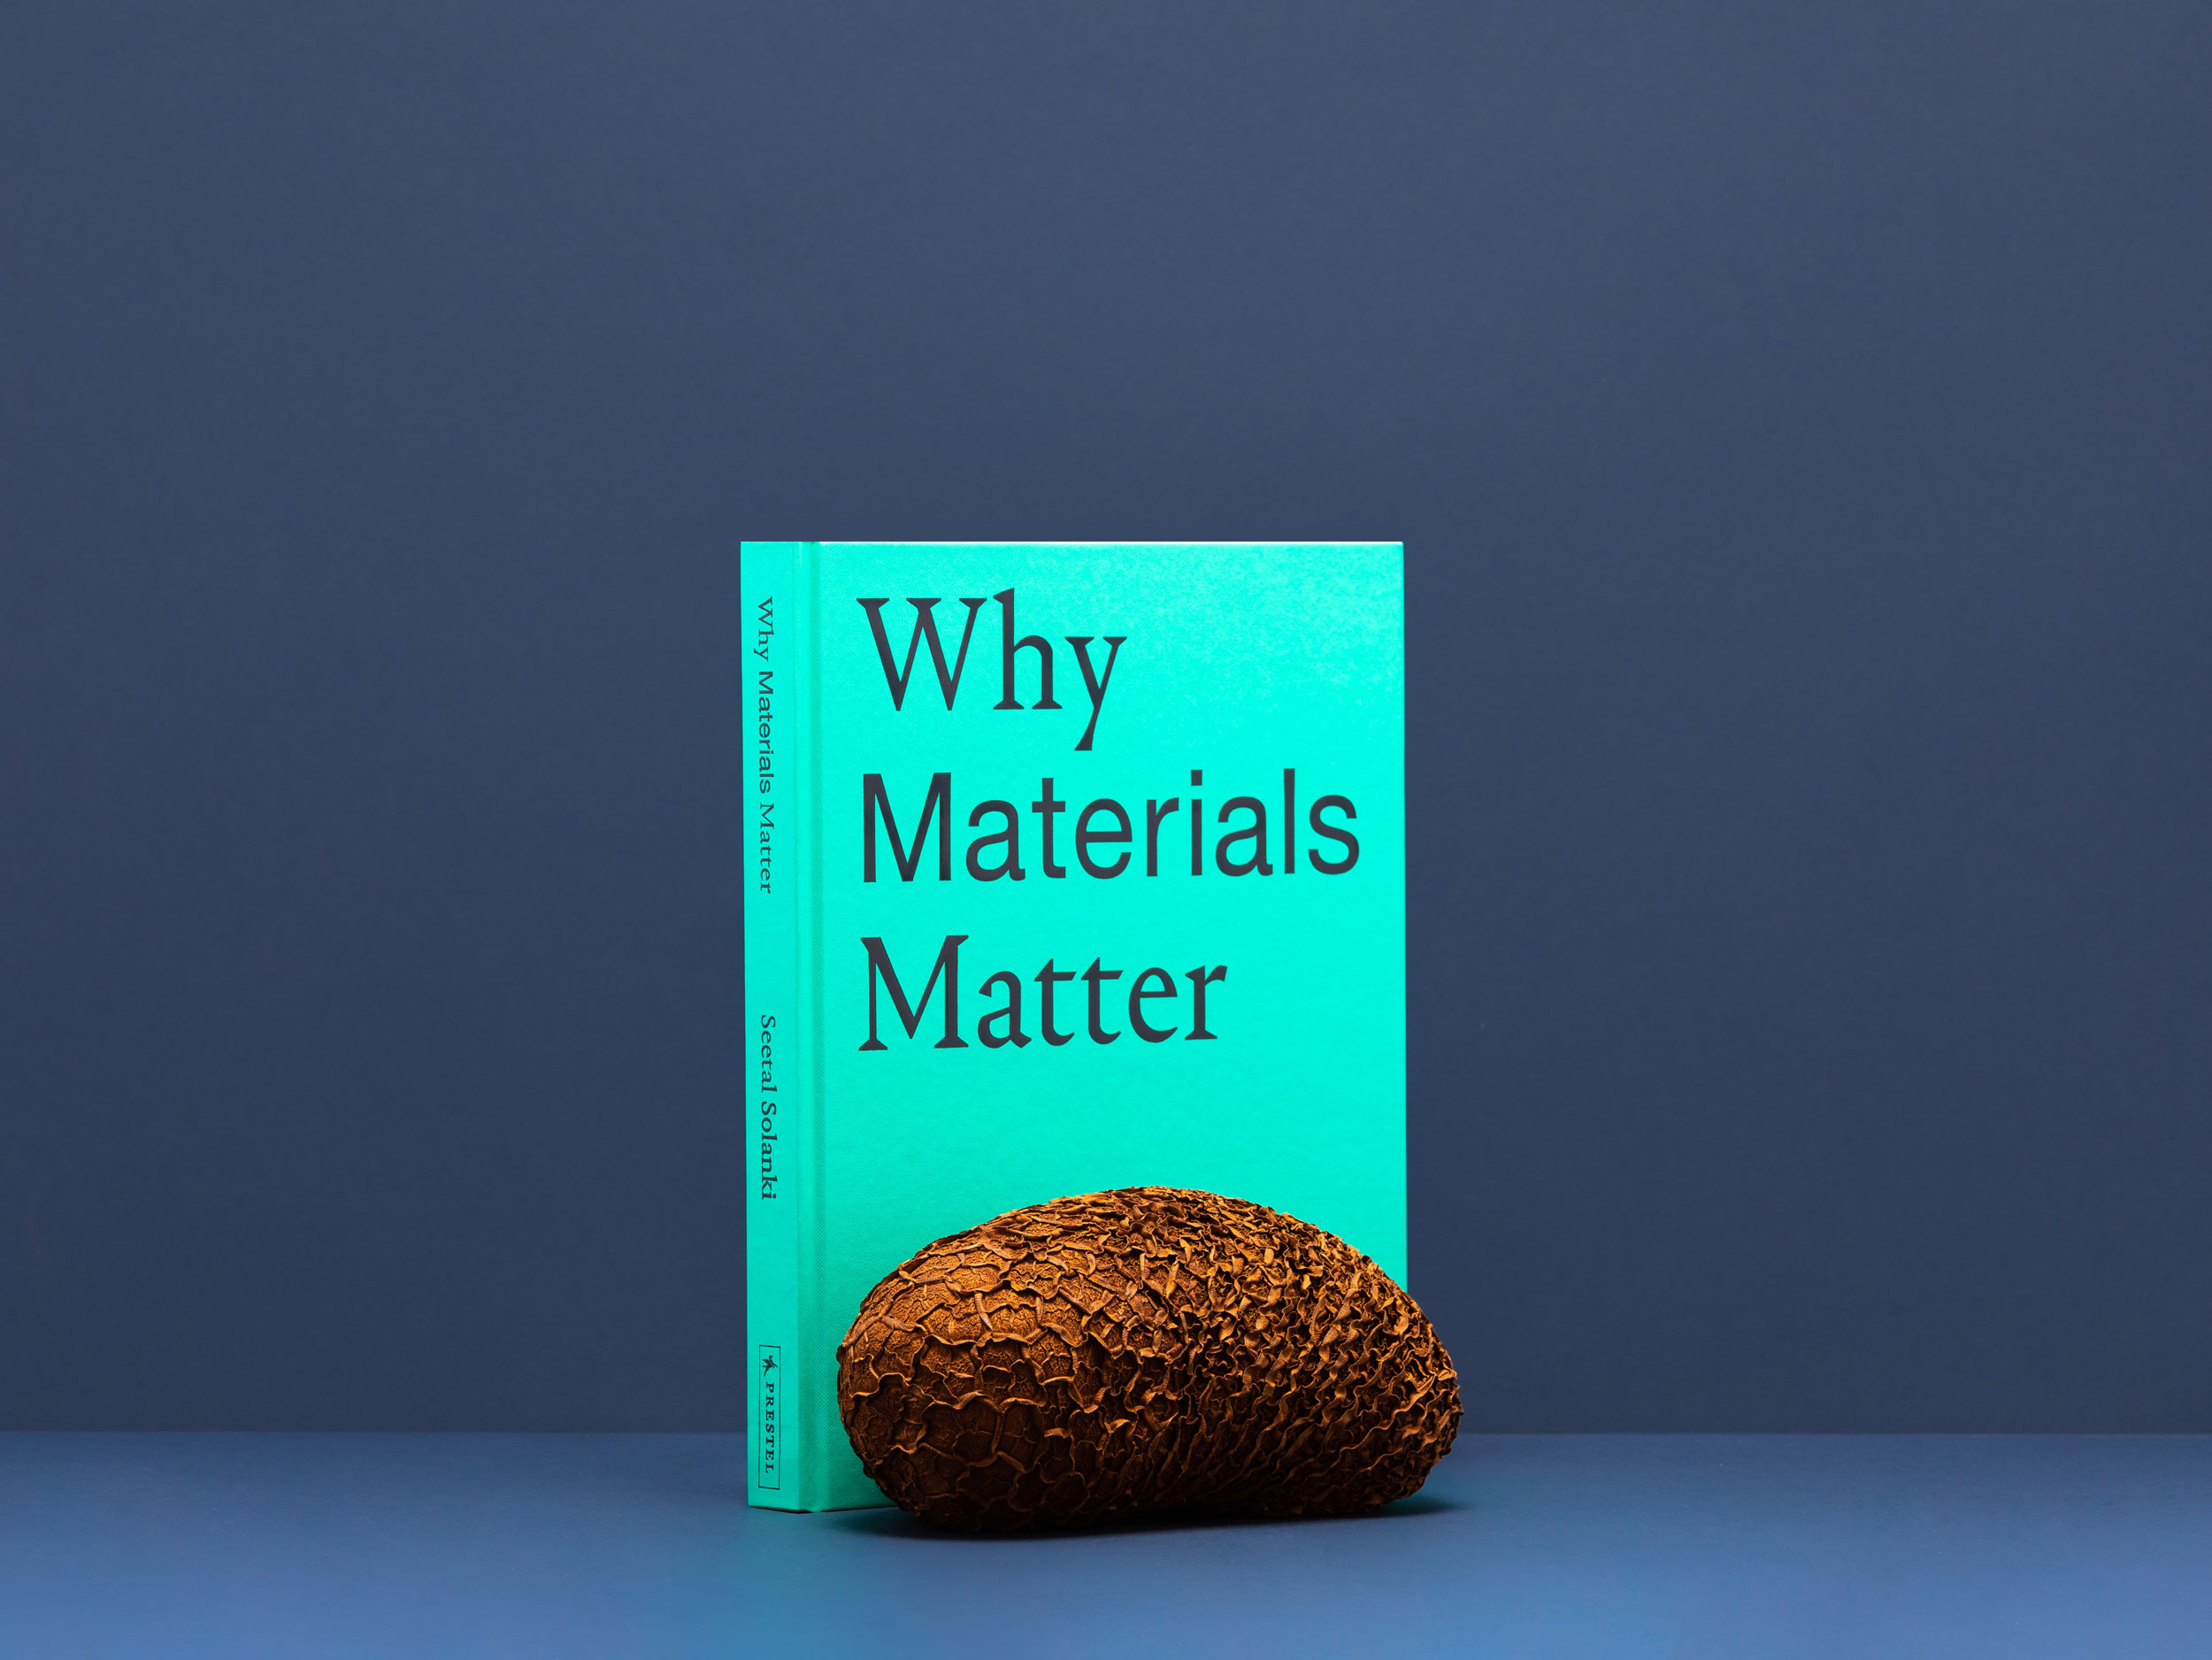 Ma-tt-er - Why Materials Matter Book Launch + Exhibition